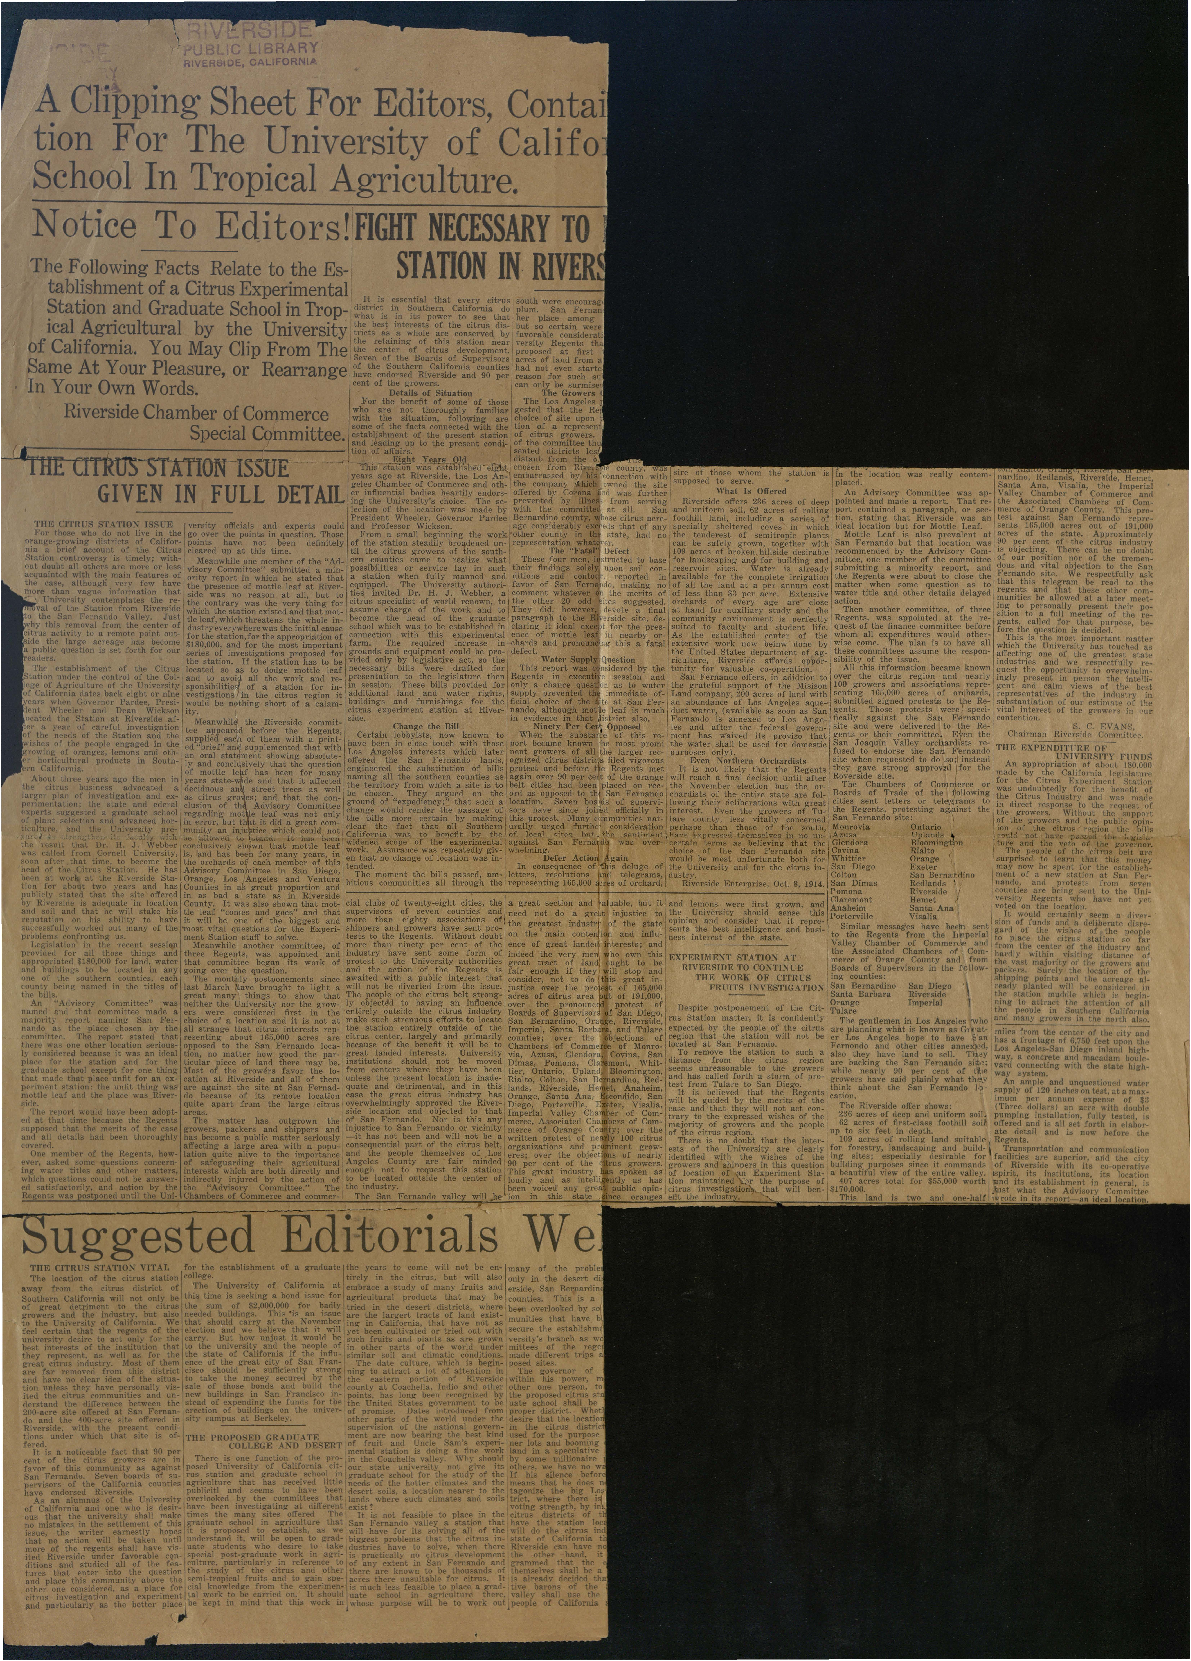 Newspaper clippings regarding selection of Riverside, California as site for Citrus Experiment Station